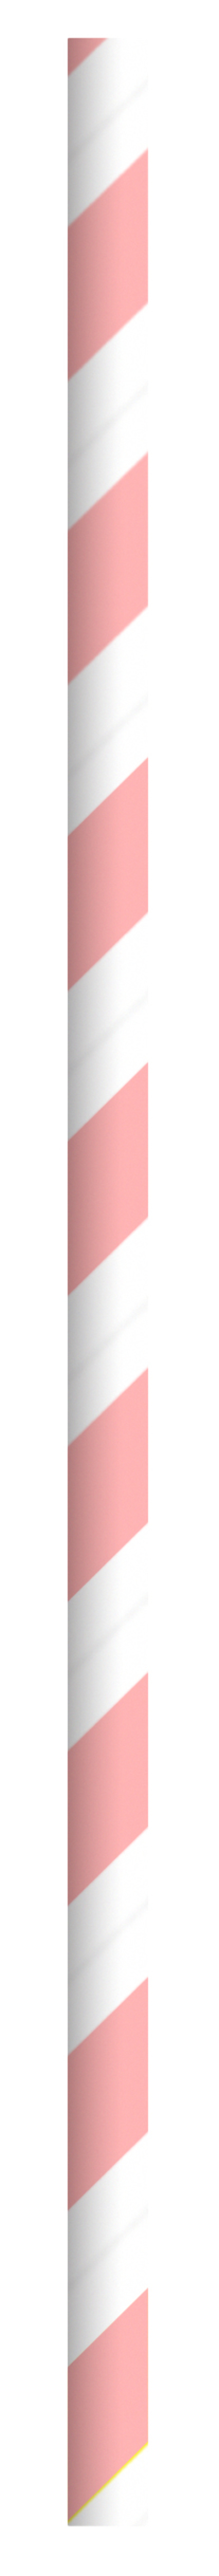 Durable Pink & White Striped Paper Straws - Individually Wrapped - 7.75 Inches